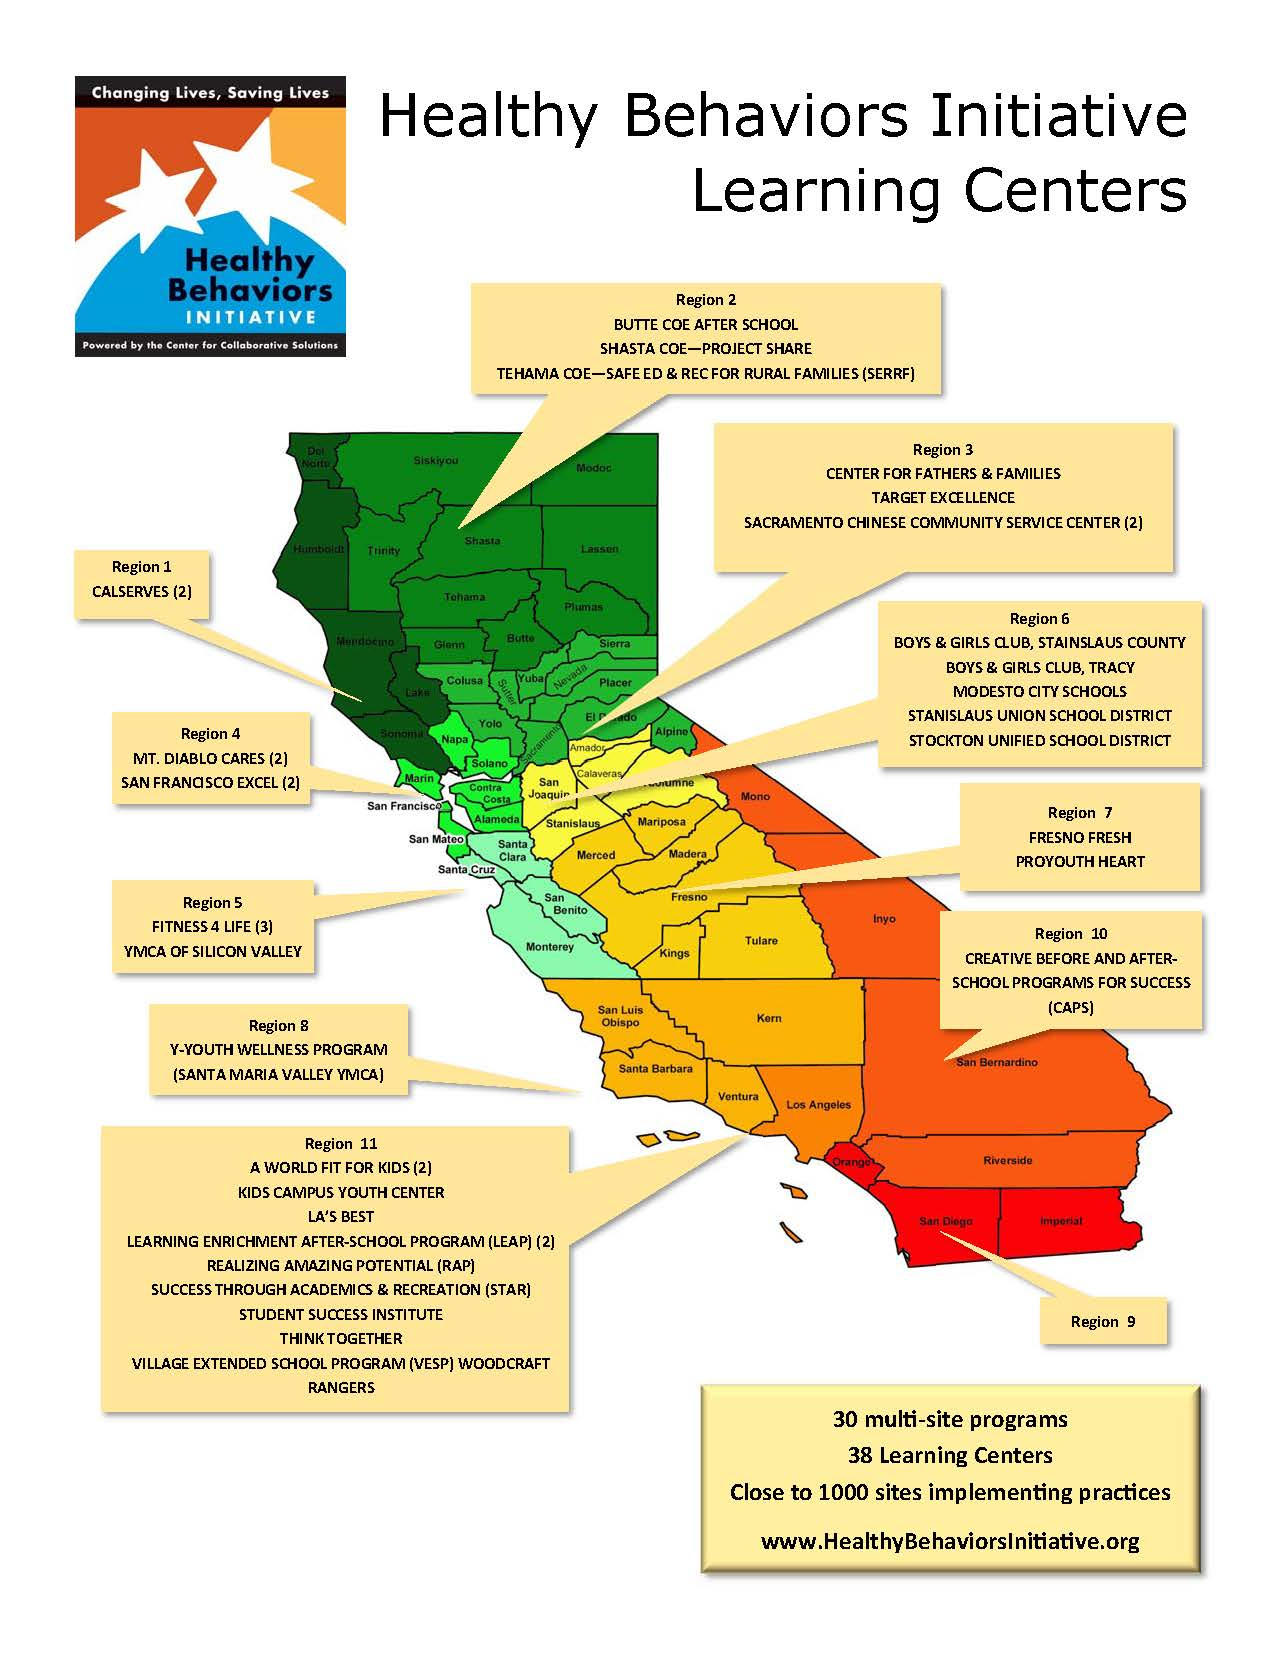 Learning Centers Map 4-10-19.jpg